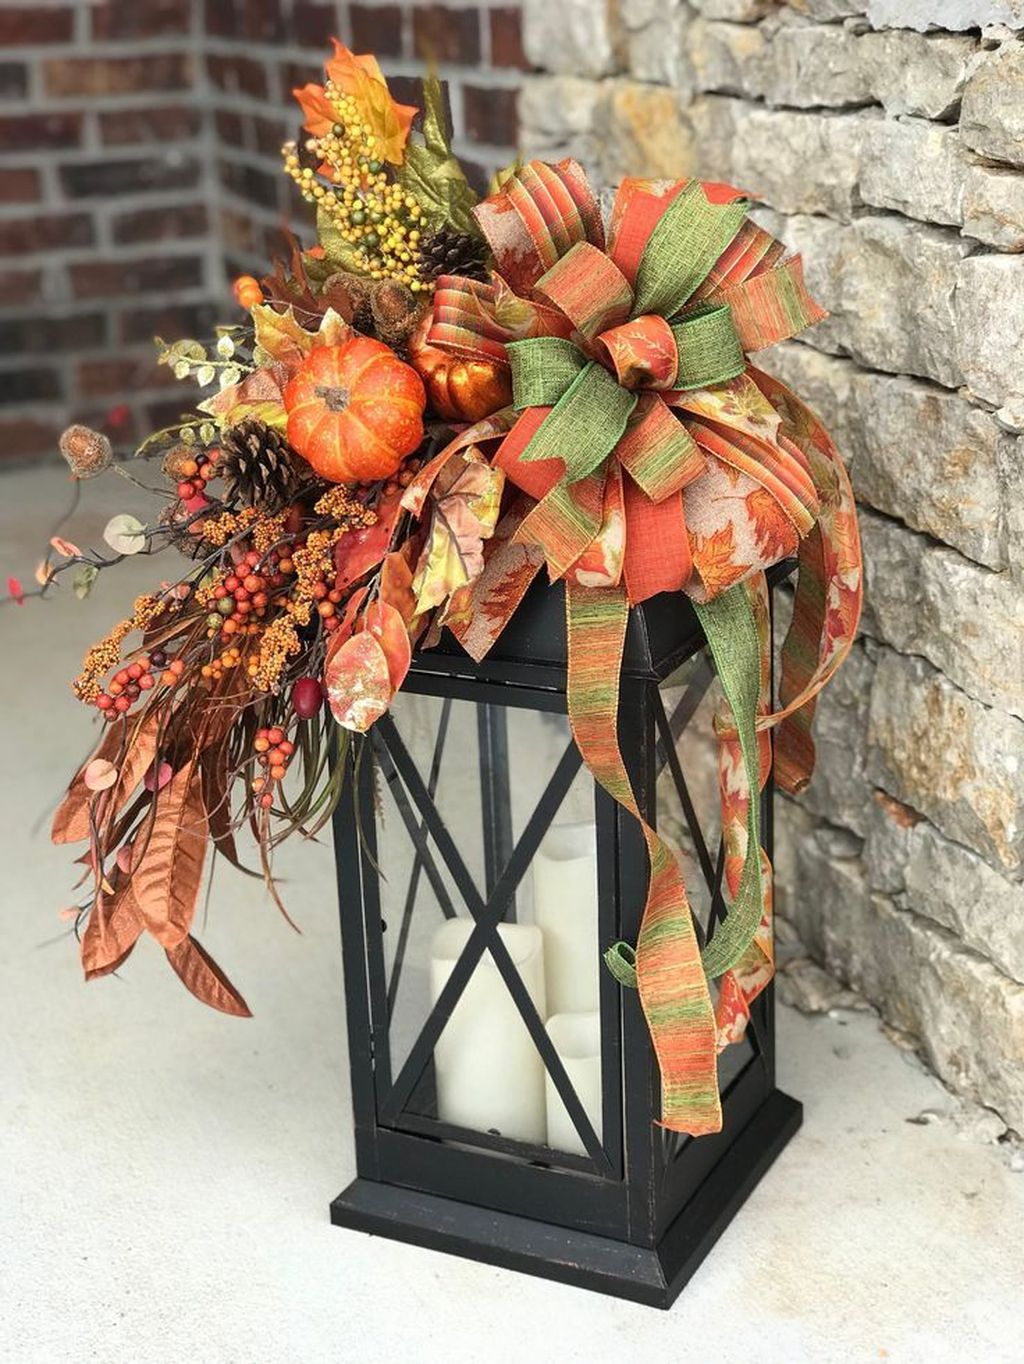 The Best Christmas Lanterns Outdoor Ideas Best For Front Porches 29